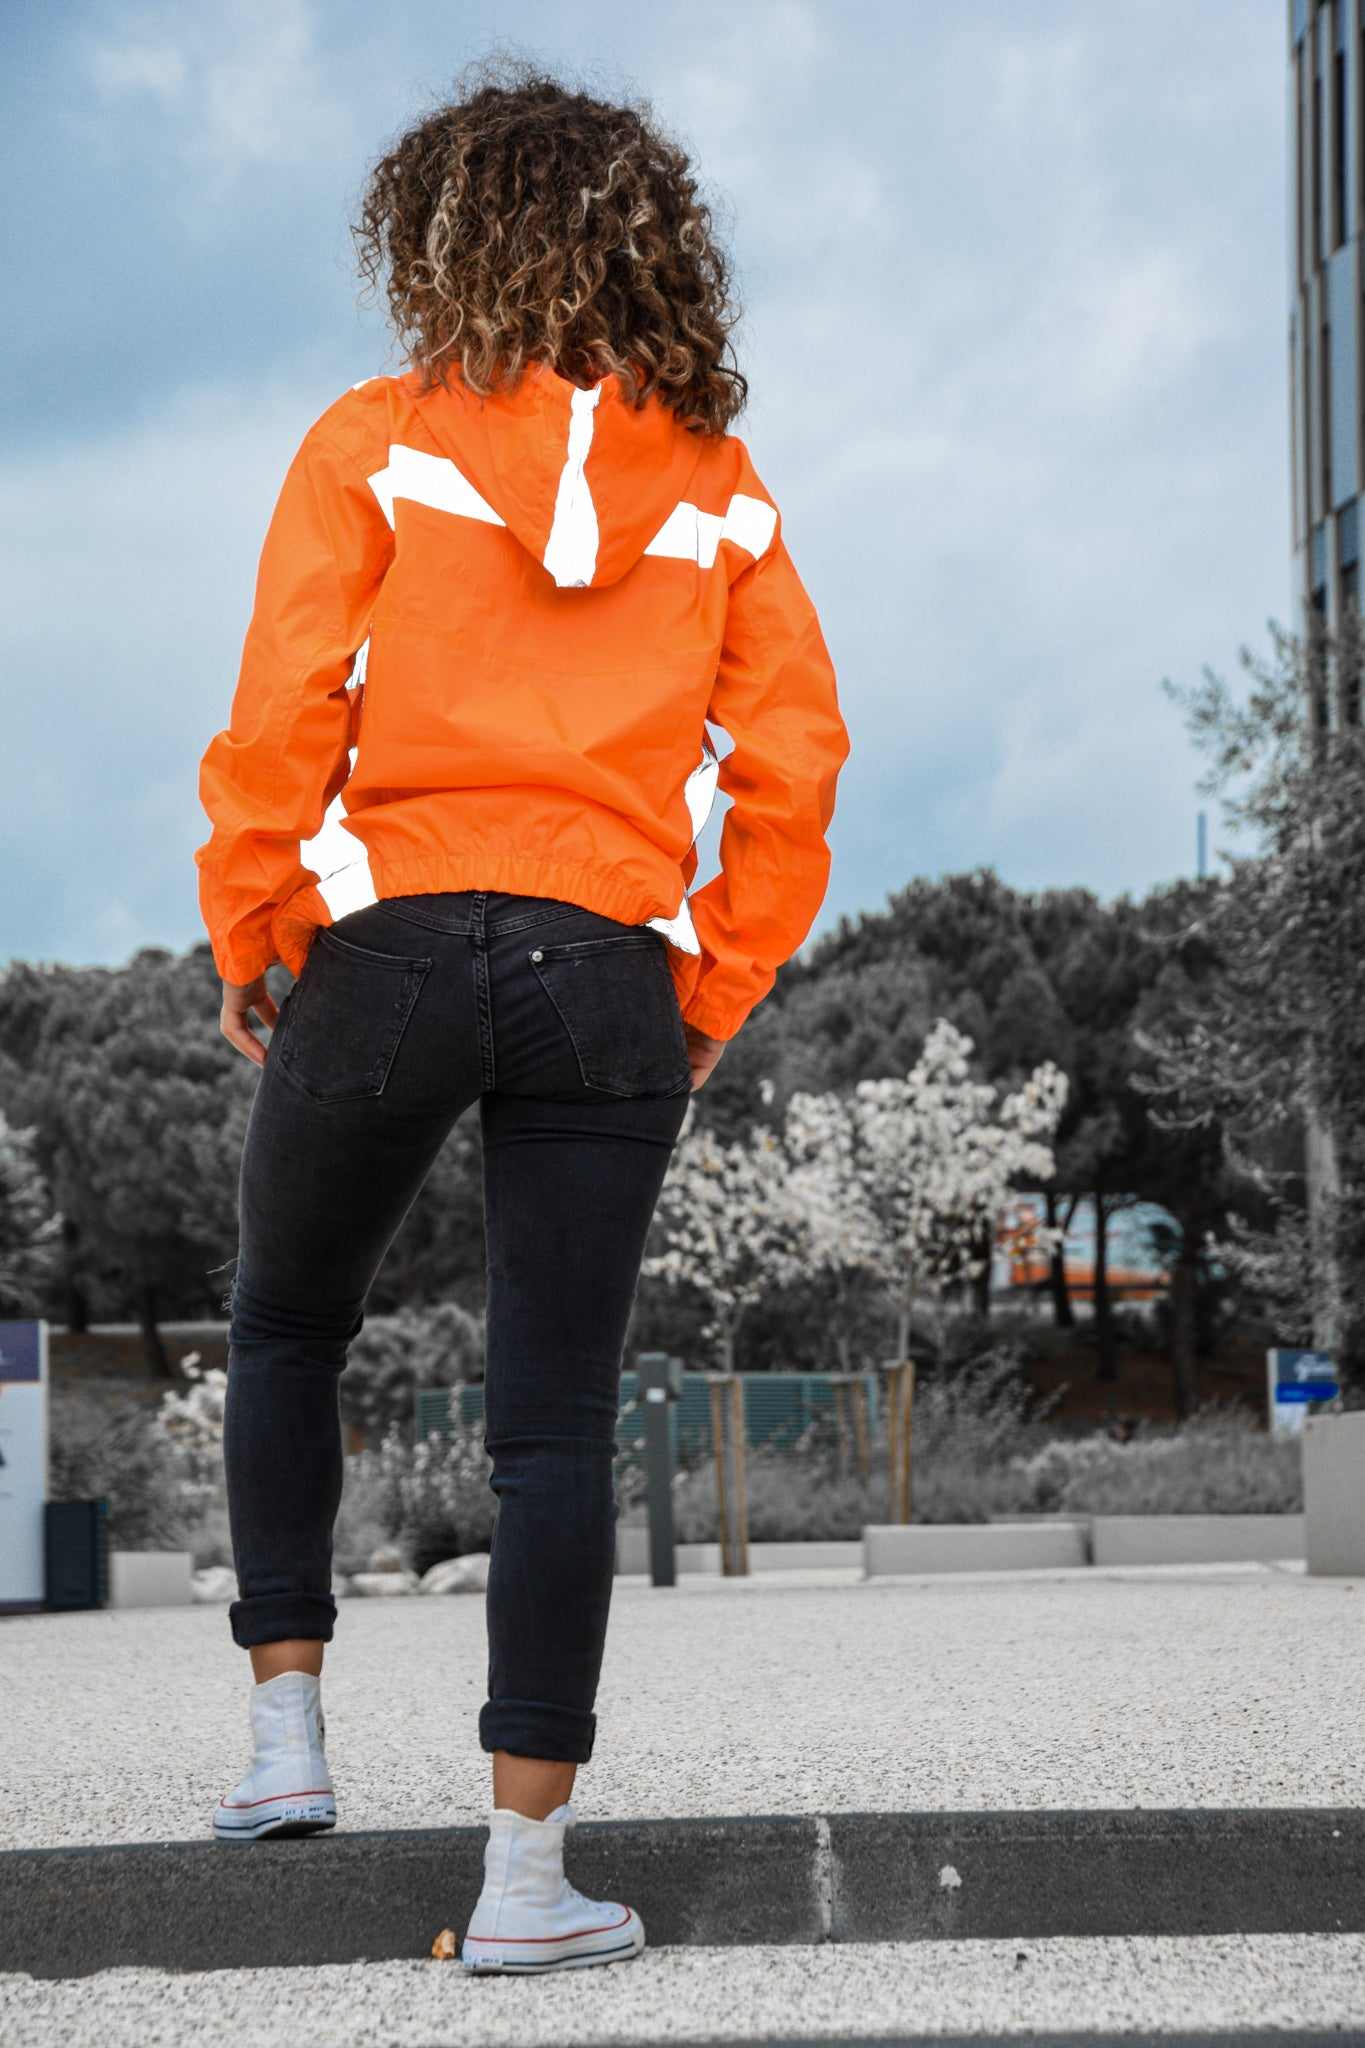 Veste Reflect X-orange WMNS